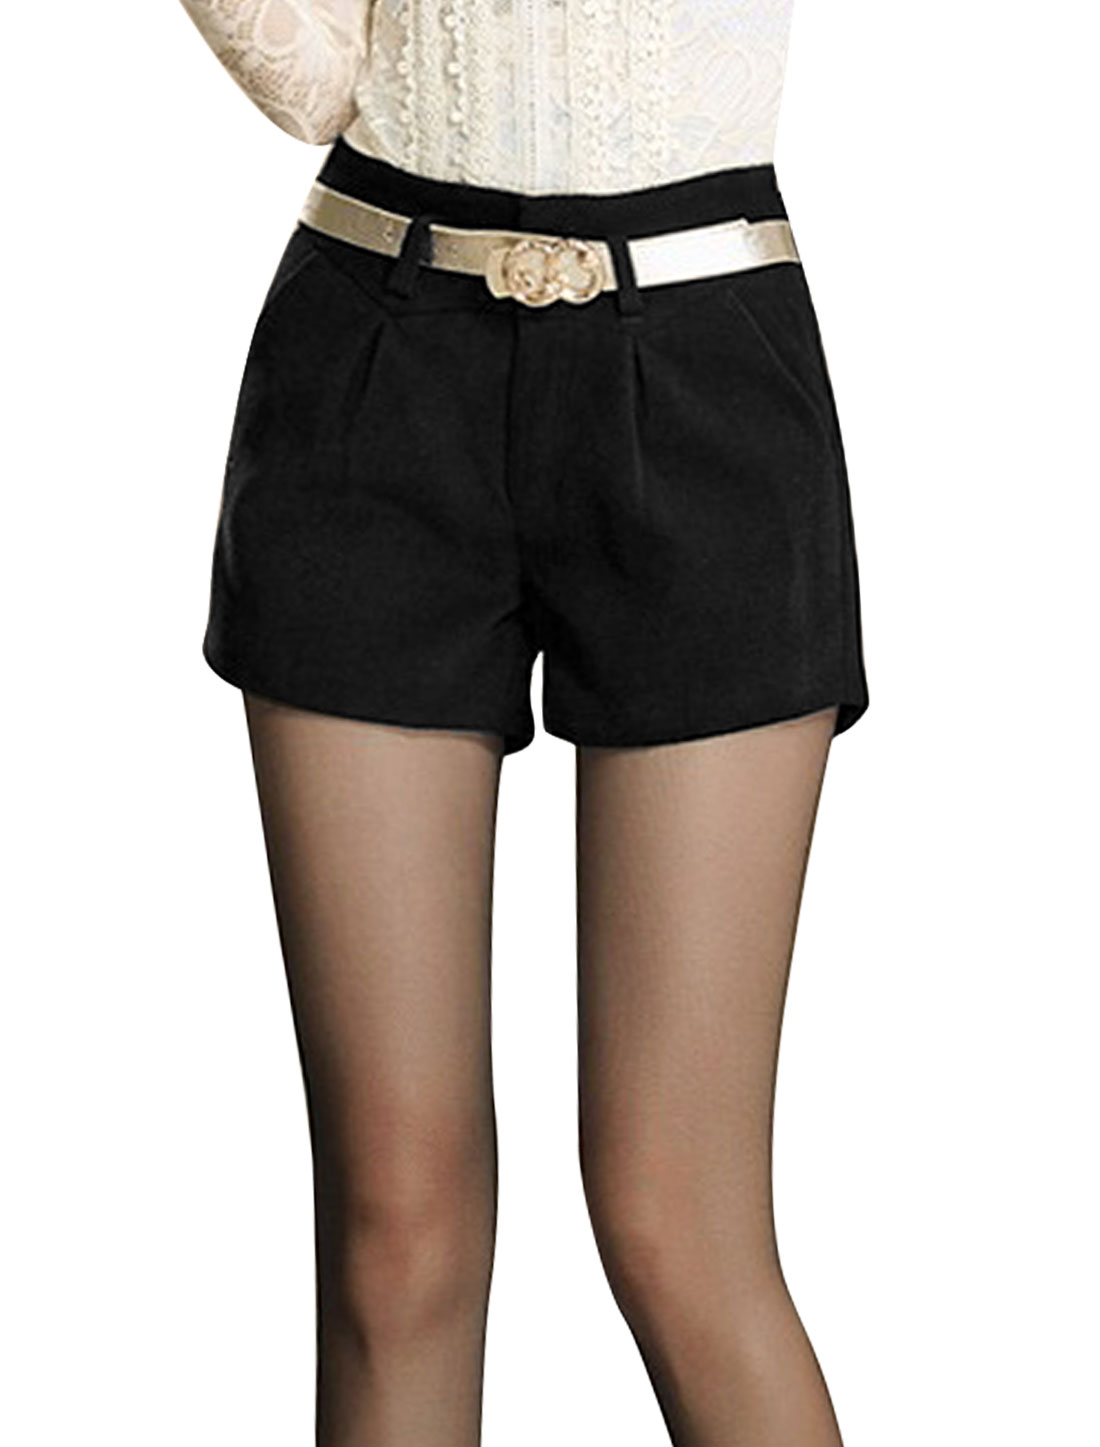 Lady Belt Loop Button Closure Zip Fly Slant Pockets Casual Shorts Black M